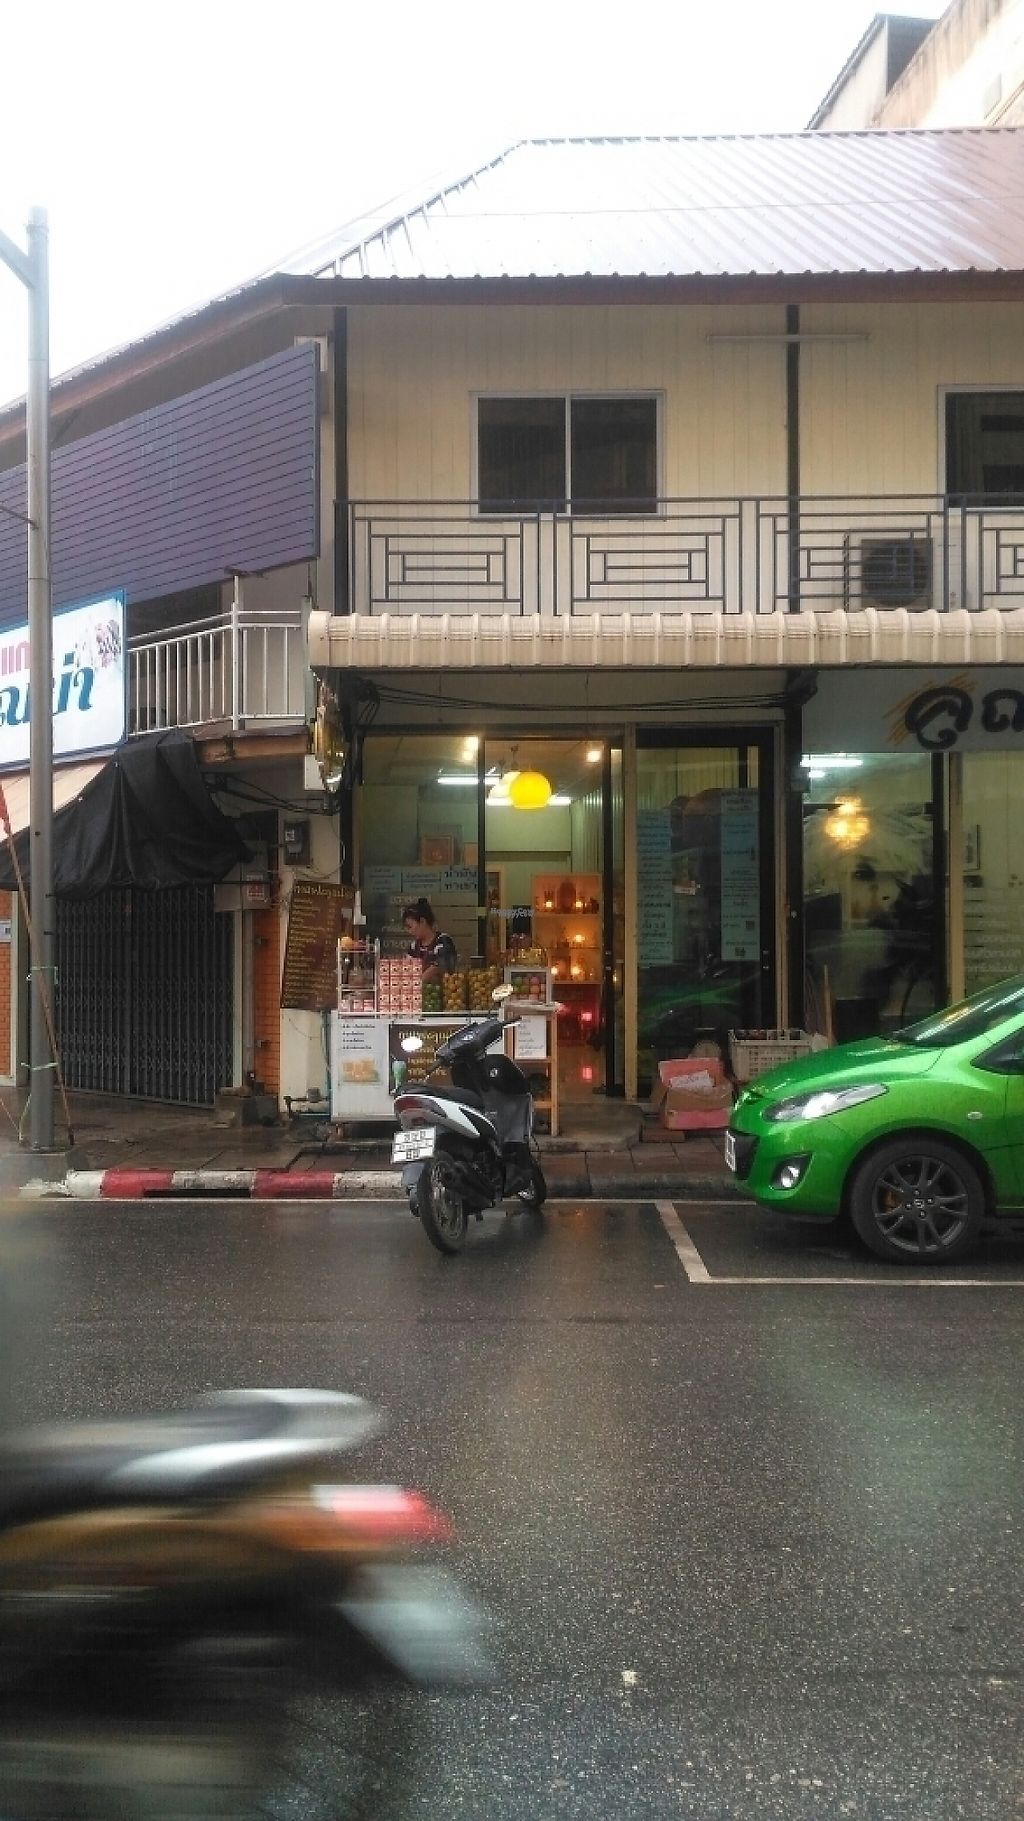 """Photo of Khun O - Organic Shop  by <a href=""""/members/profile/zibblezen"""">zibblezen</a> <br/>The shop front on Namuang Road <br/> April 4, 2017  - <a href='/contact/abuse/image/89749/244624'>Report</a>"""